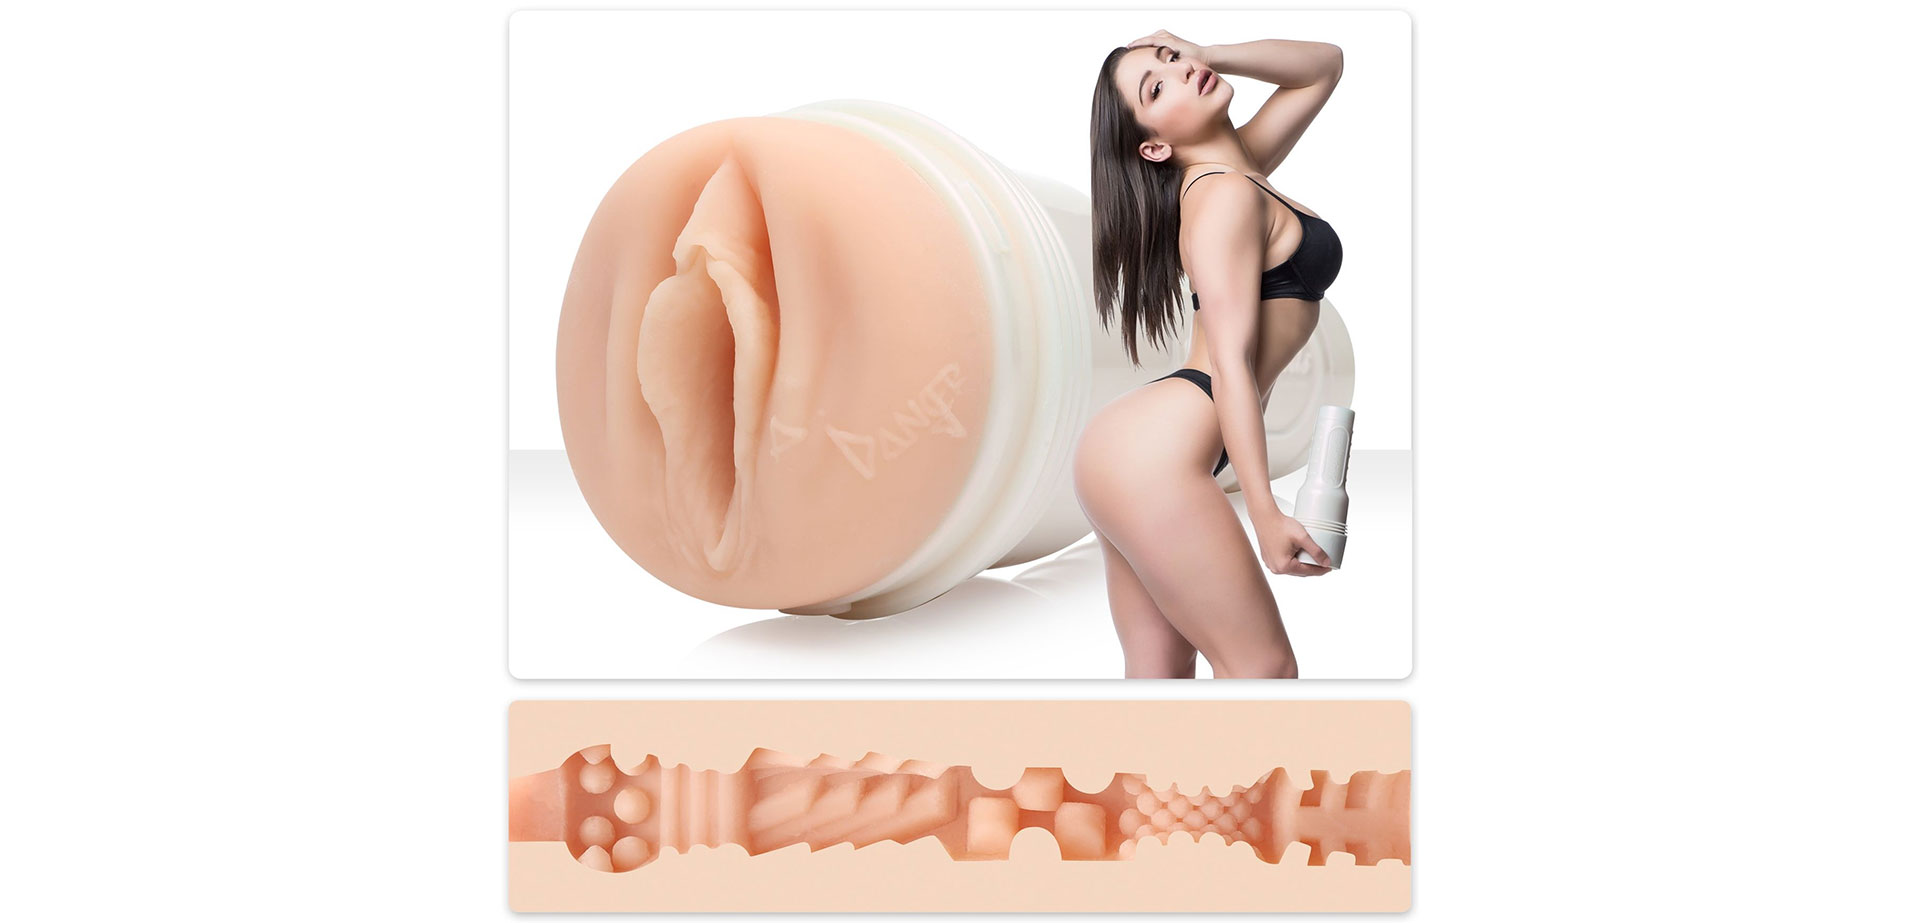 Filles Fleshlight: Abella Danger Danger.